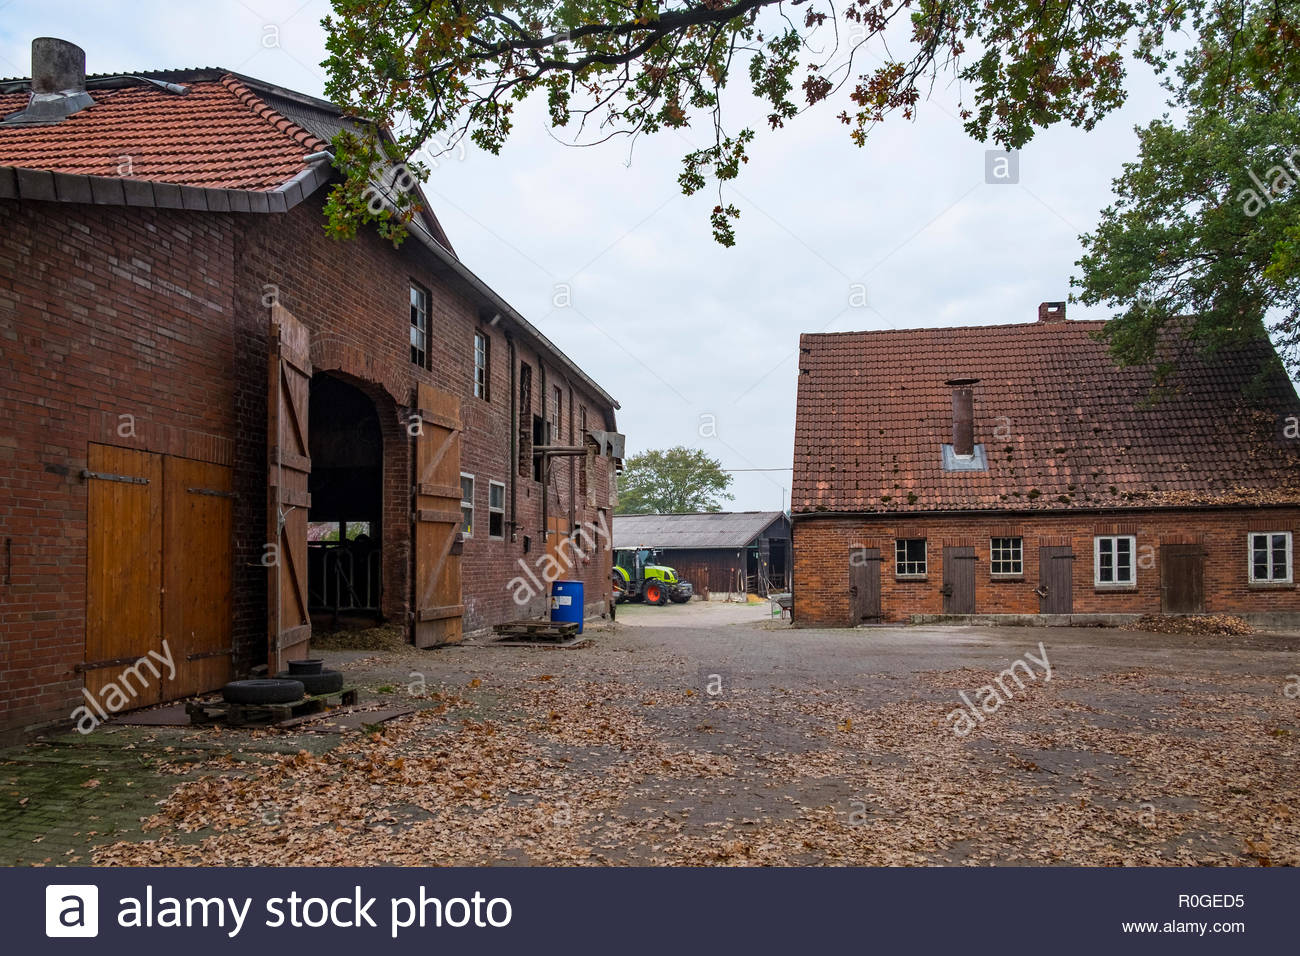 Farm buildings in the village of Lintig, Geestland, in Landkreis Cuxhaven, northern Germany - Stock Image